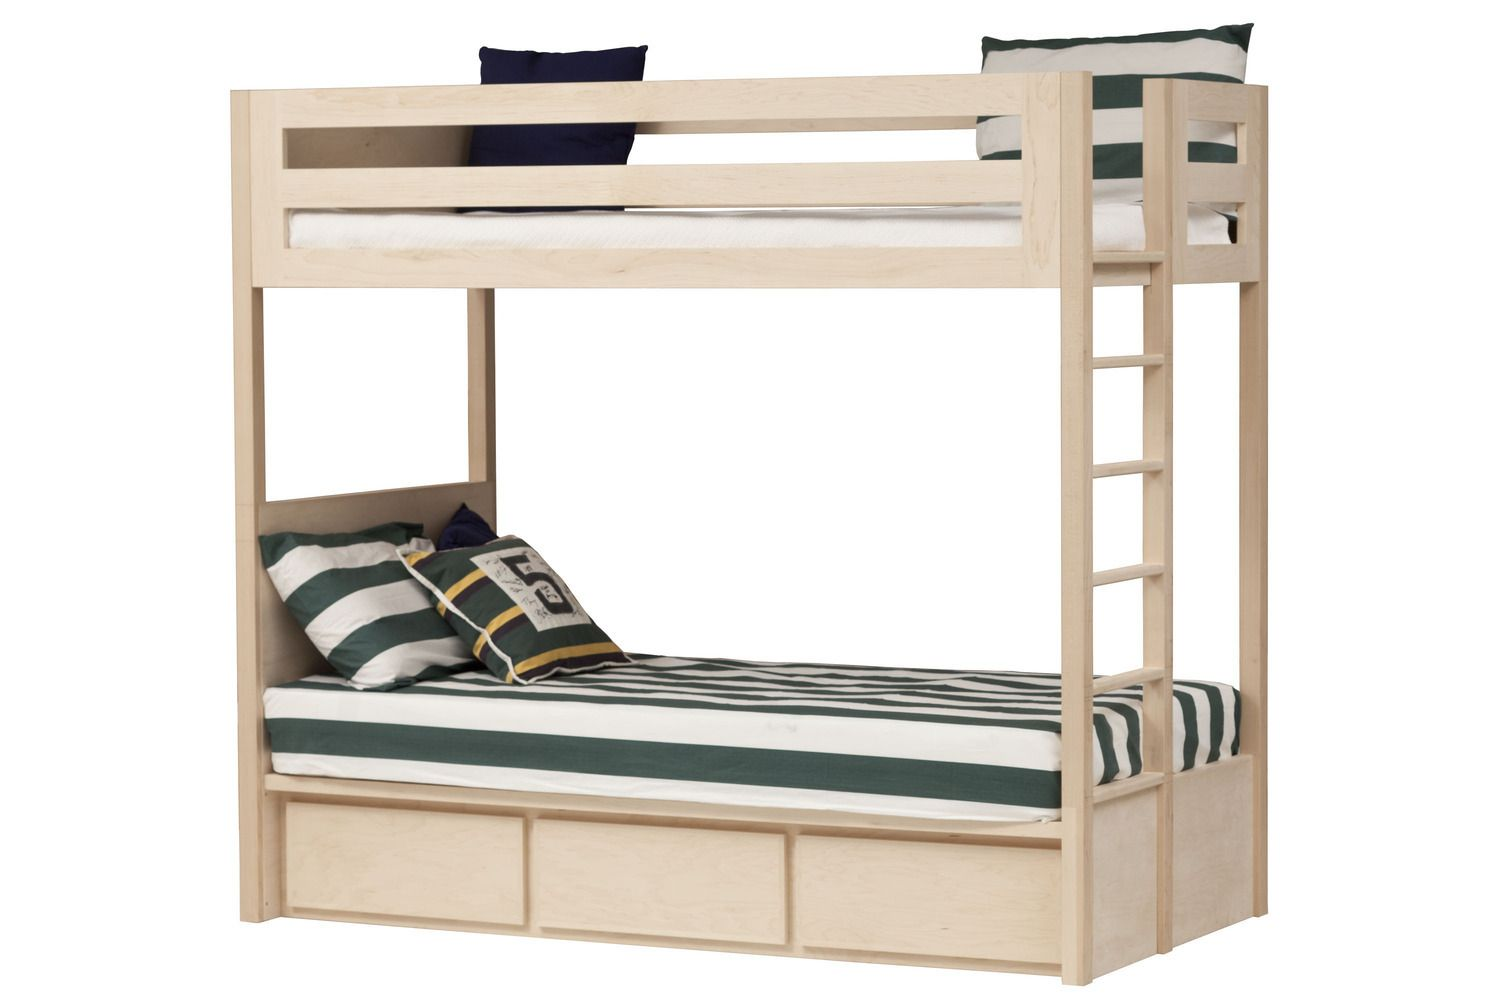 Twin Xl Bunk Beds With 3 Drawers Bunk Beds Boys Bedroom